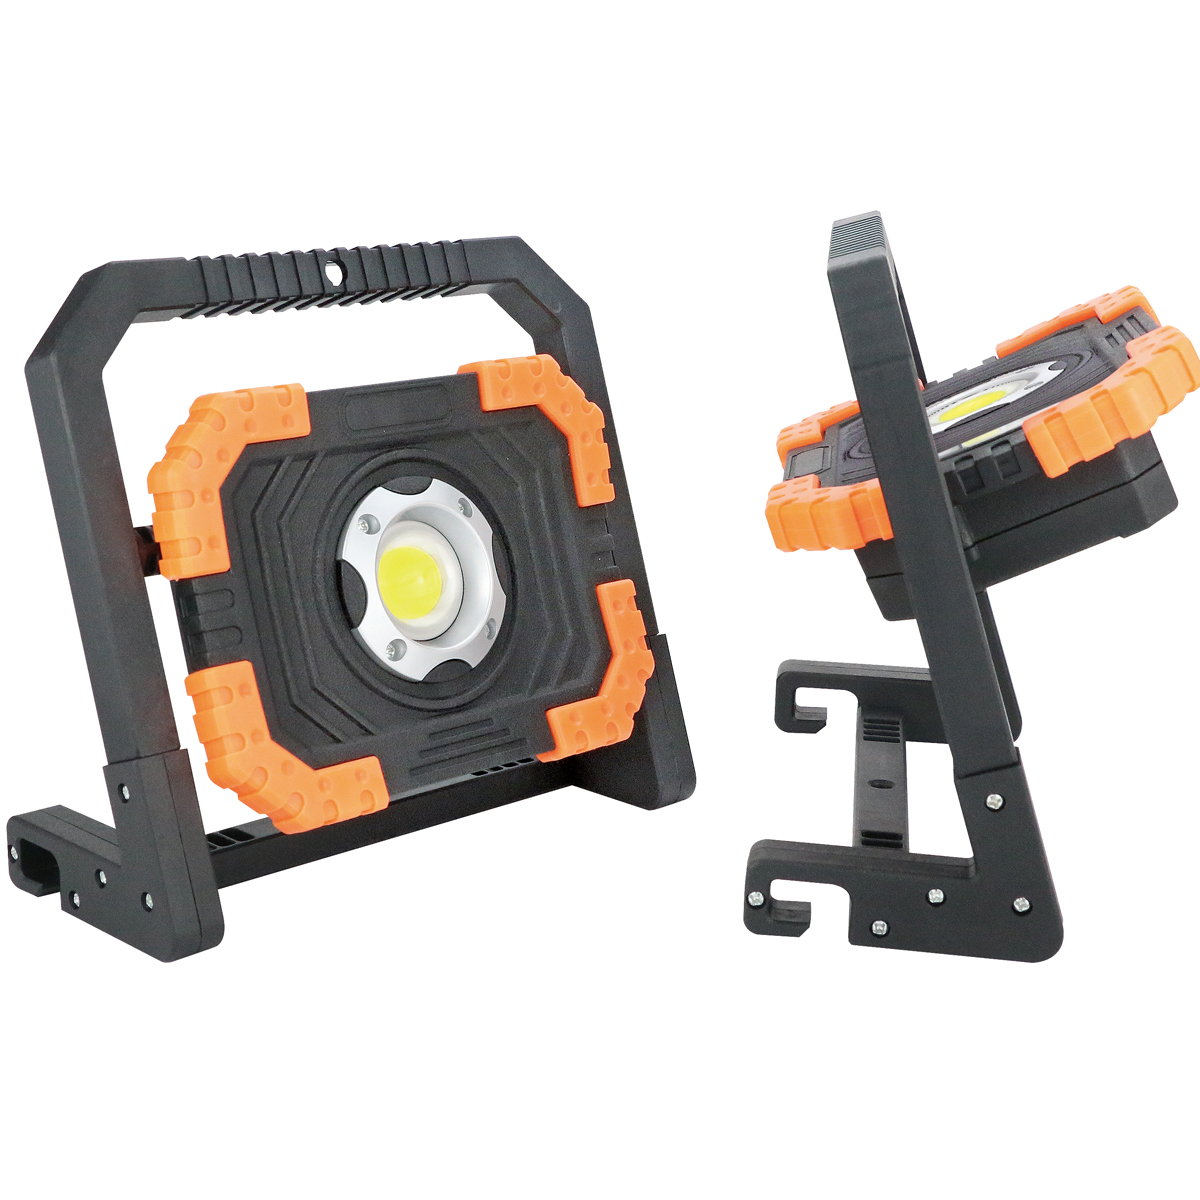 800Lumens 10W USB Rechargeable Magnetic Stand Work Light